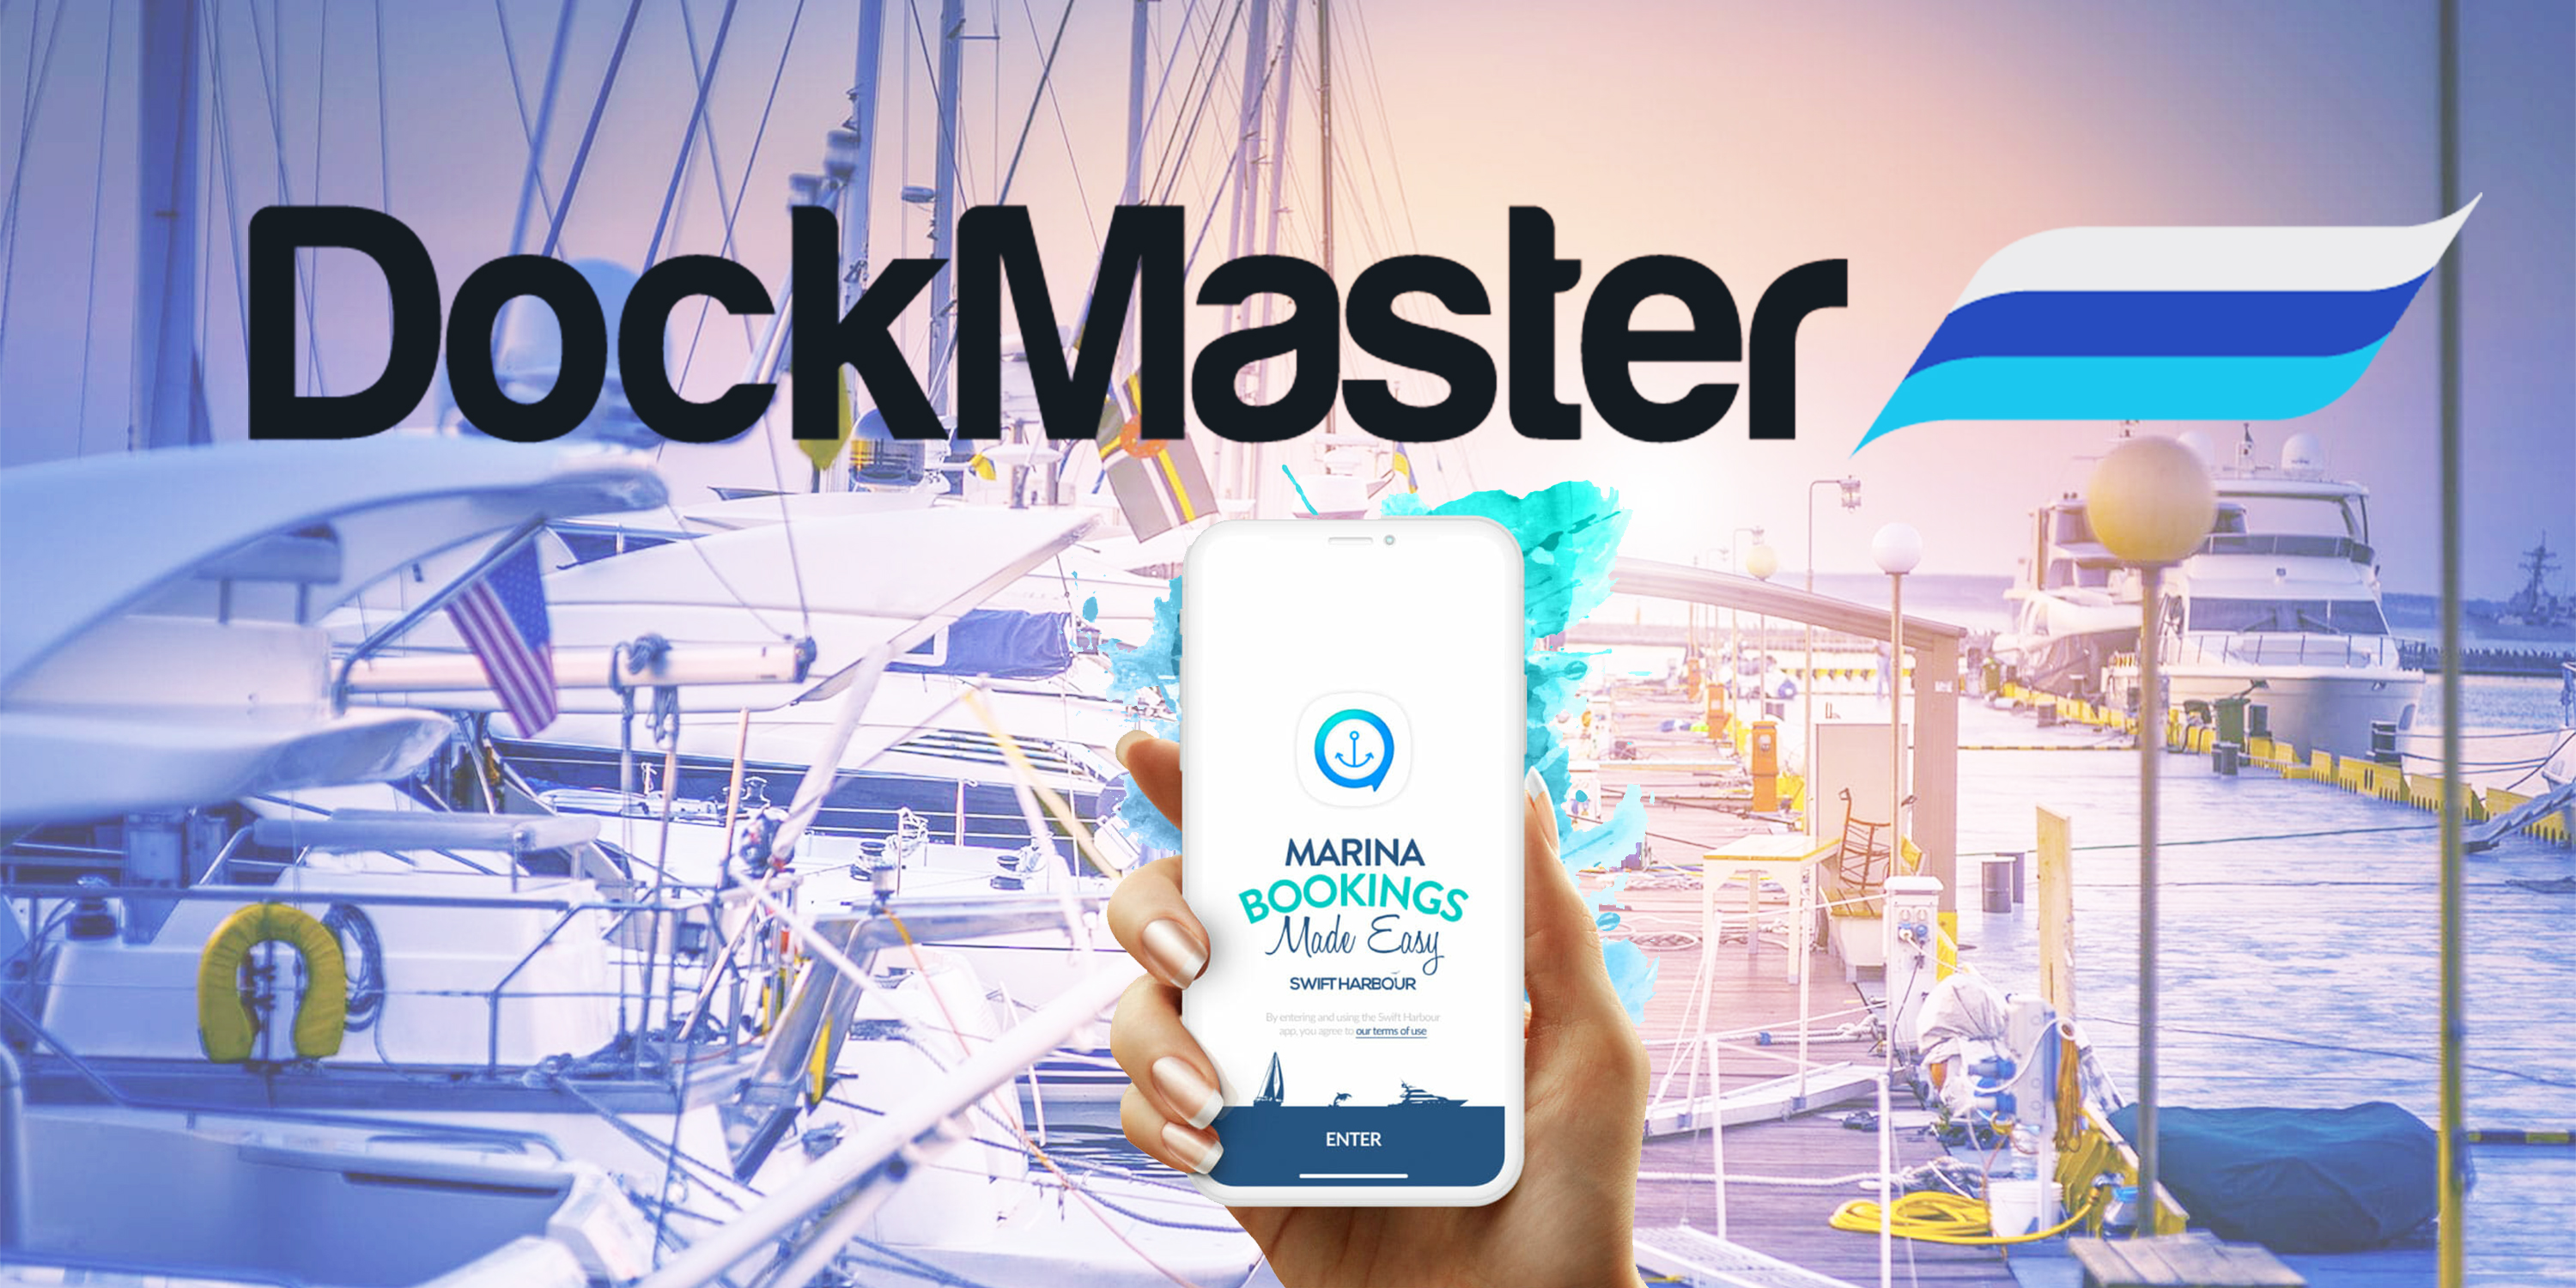 How DockMaster/Swift Harbour Integration Streamlines Your Marina And Satisfies Customers